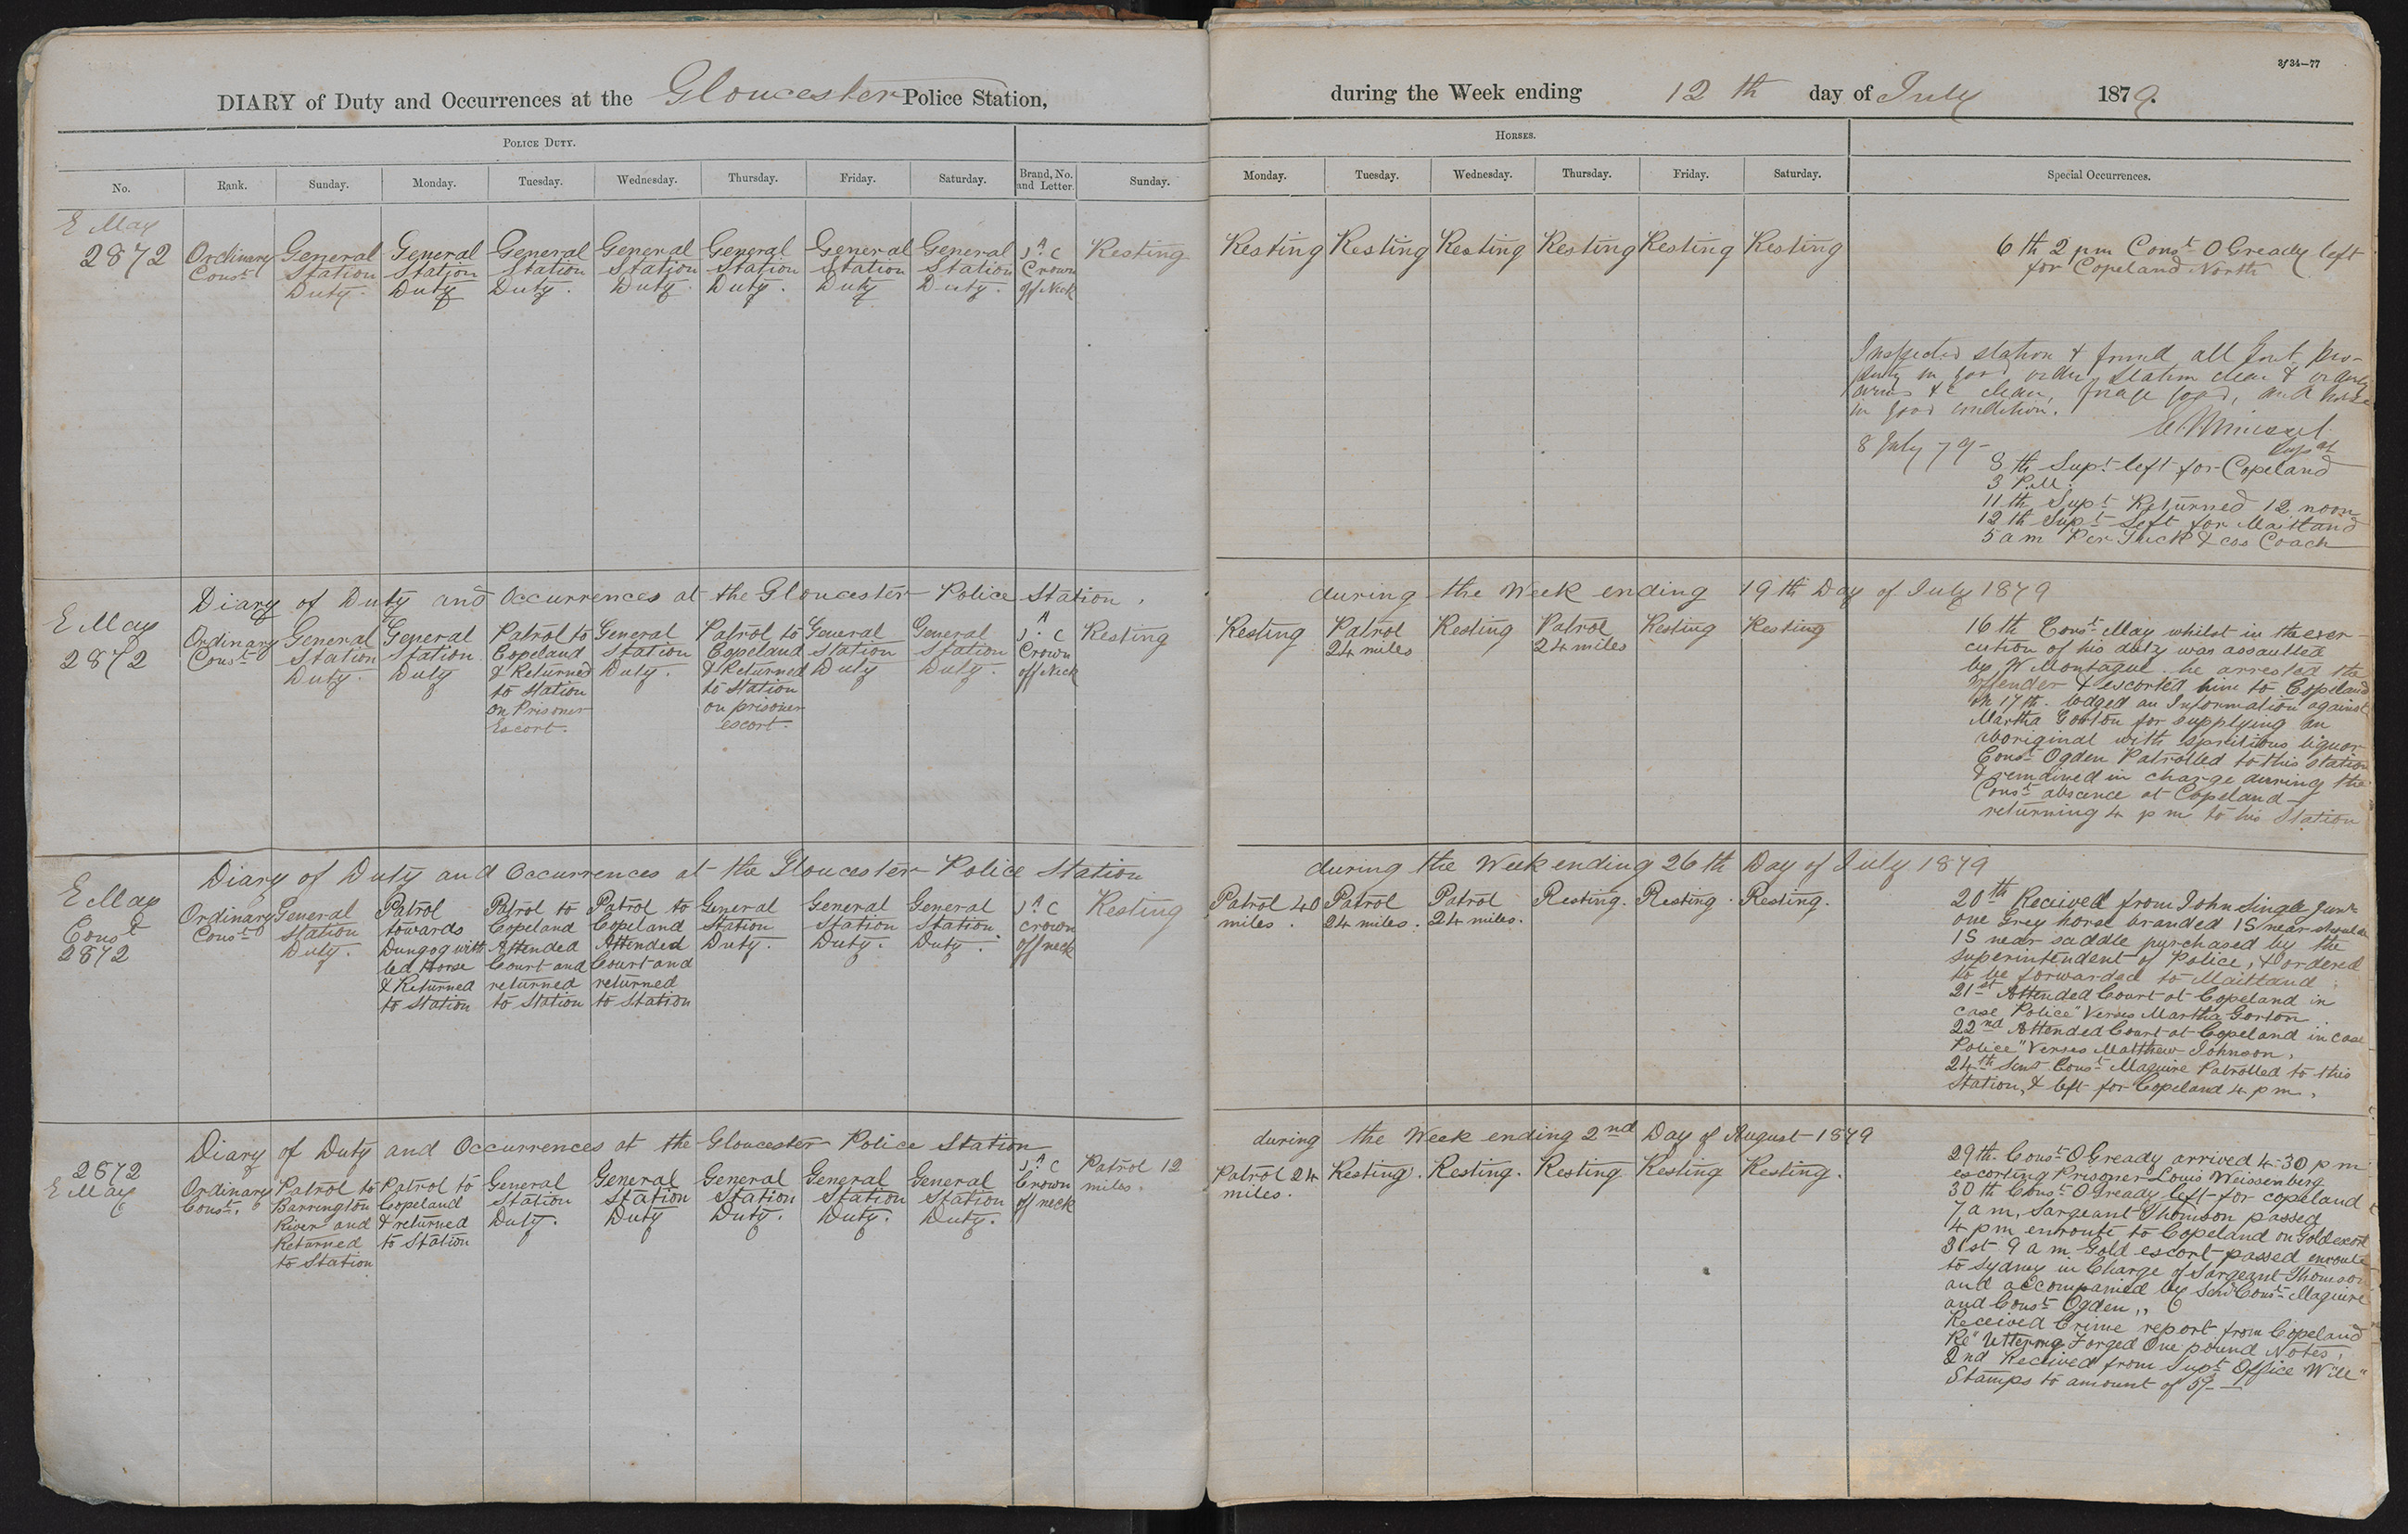 Diary of duty and occurrences at the Gloucester Police Station during the week ending the 12th day of July 1879